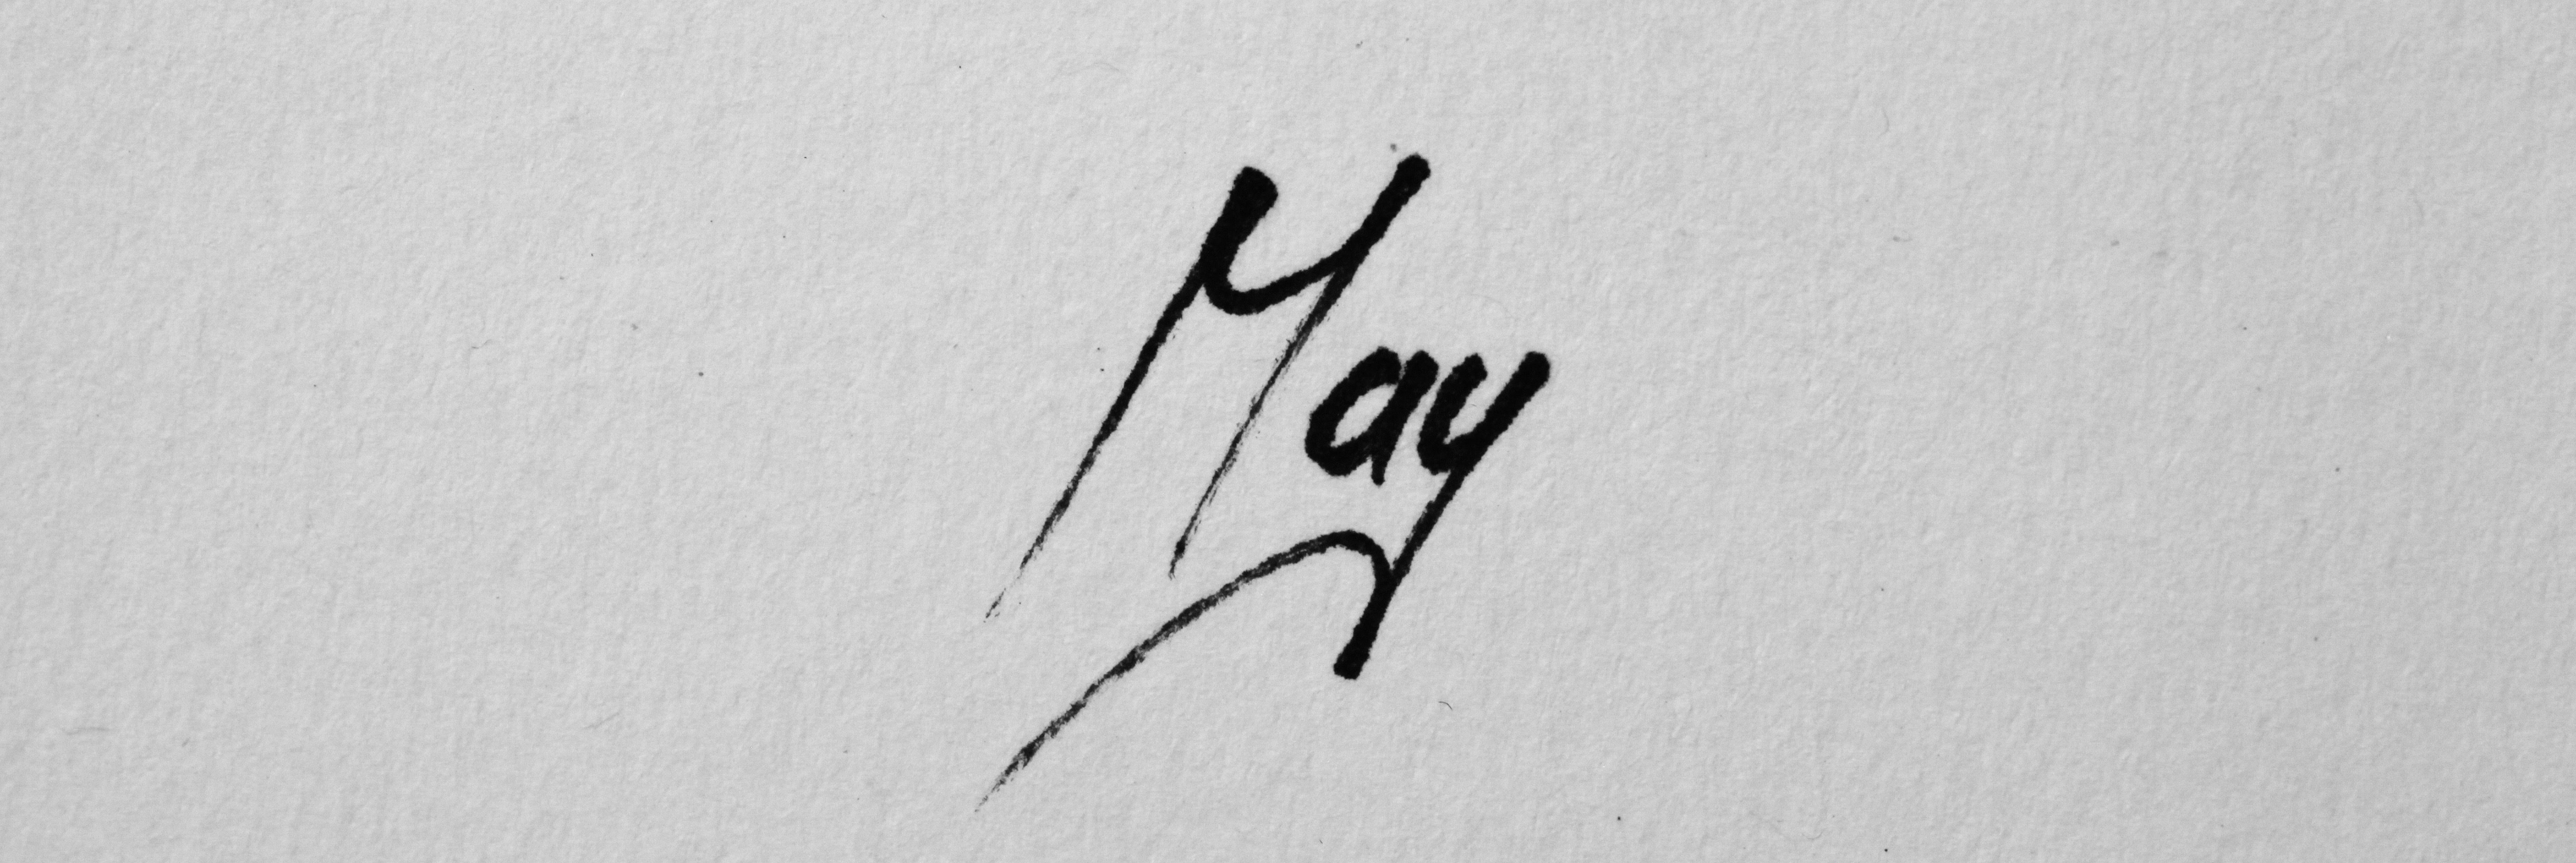 Damir May's Signature